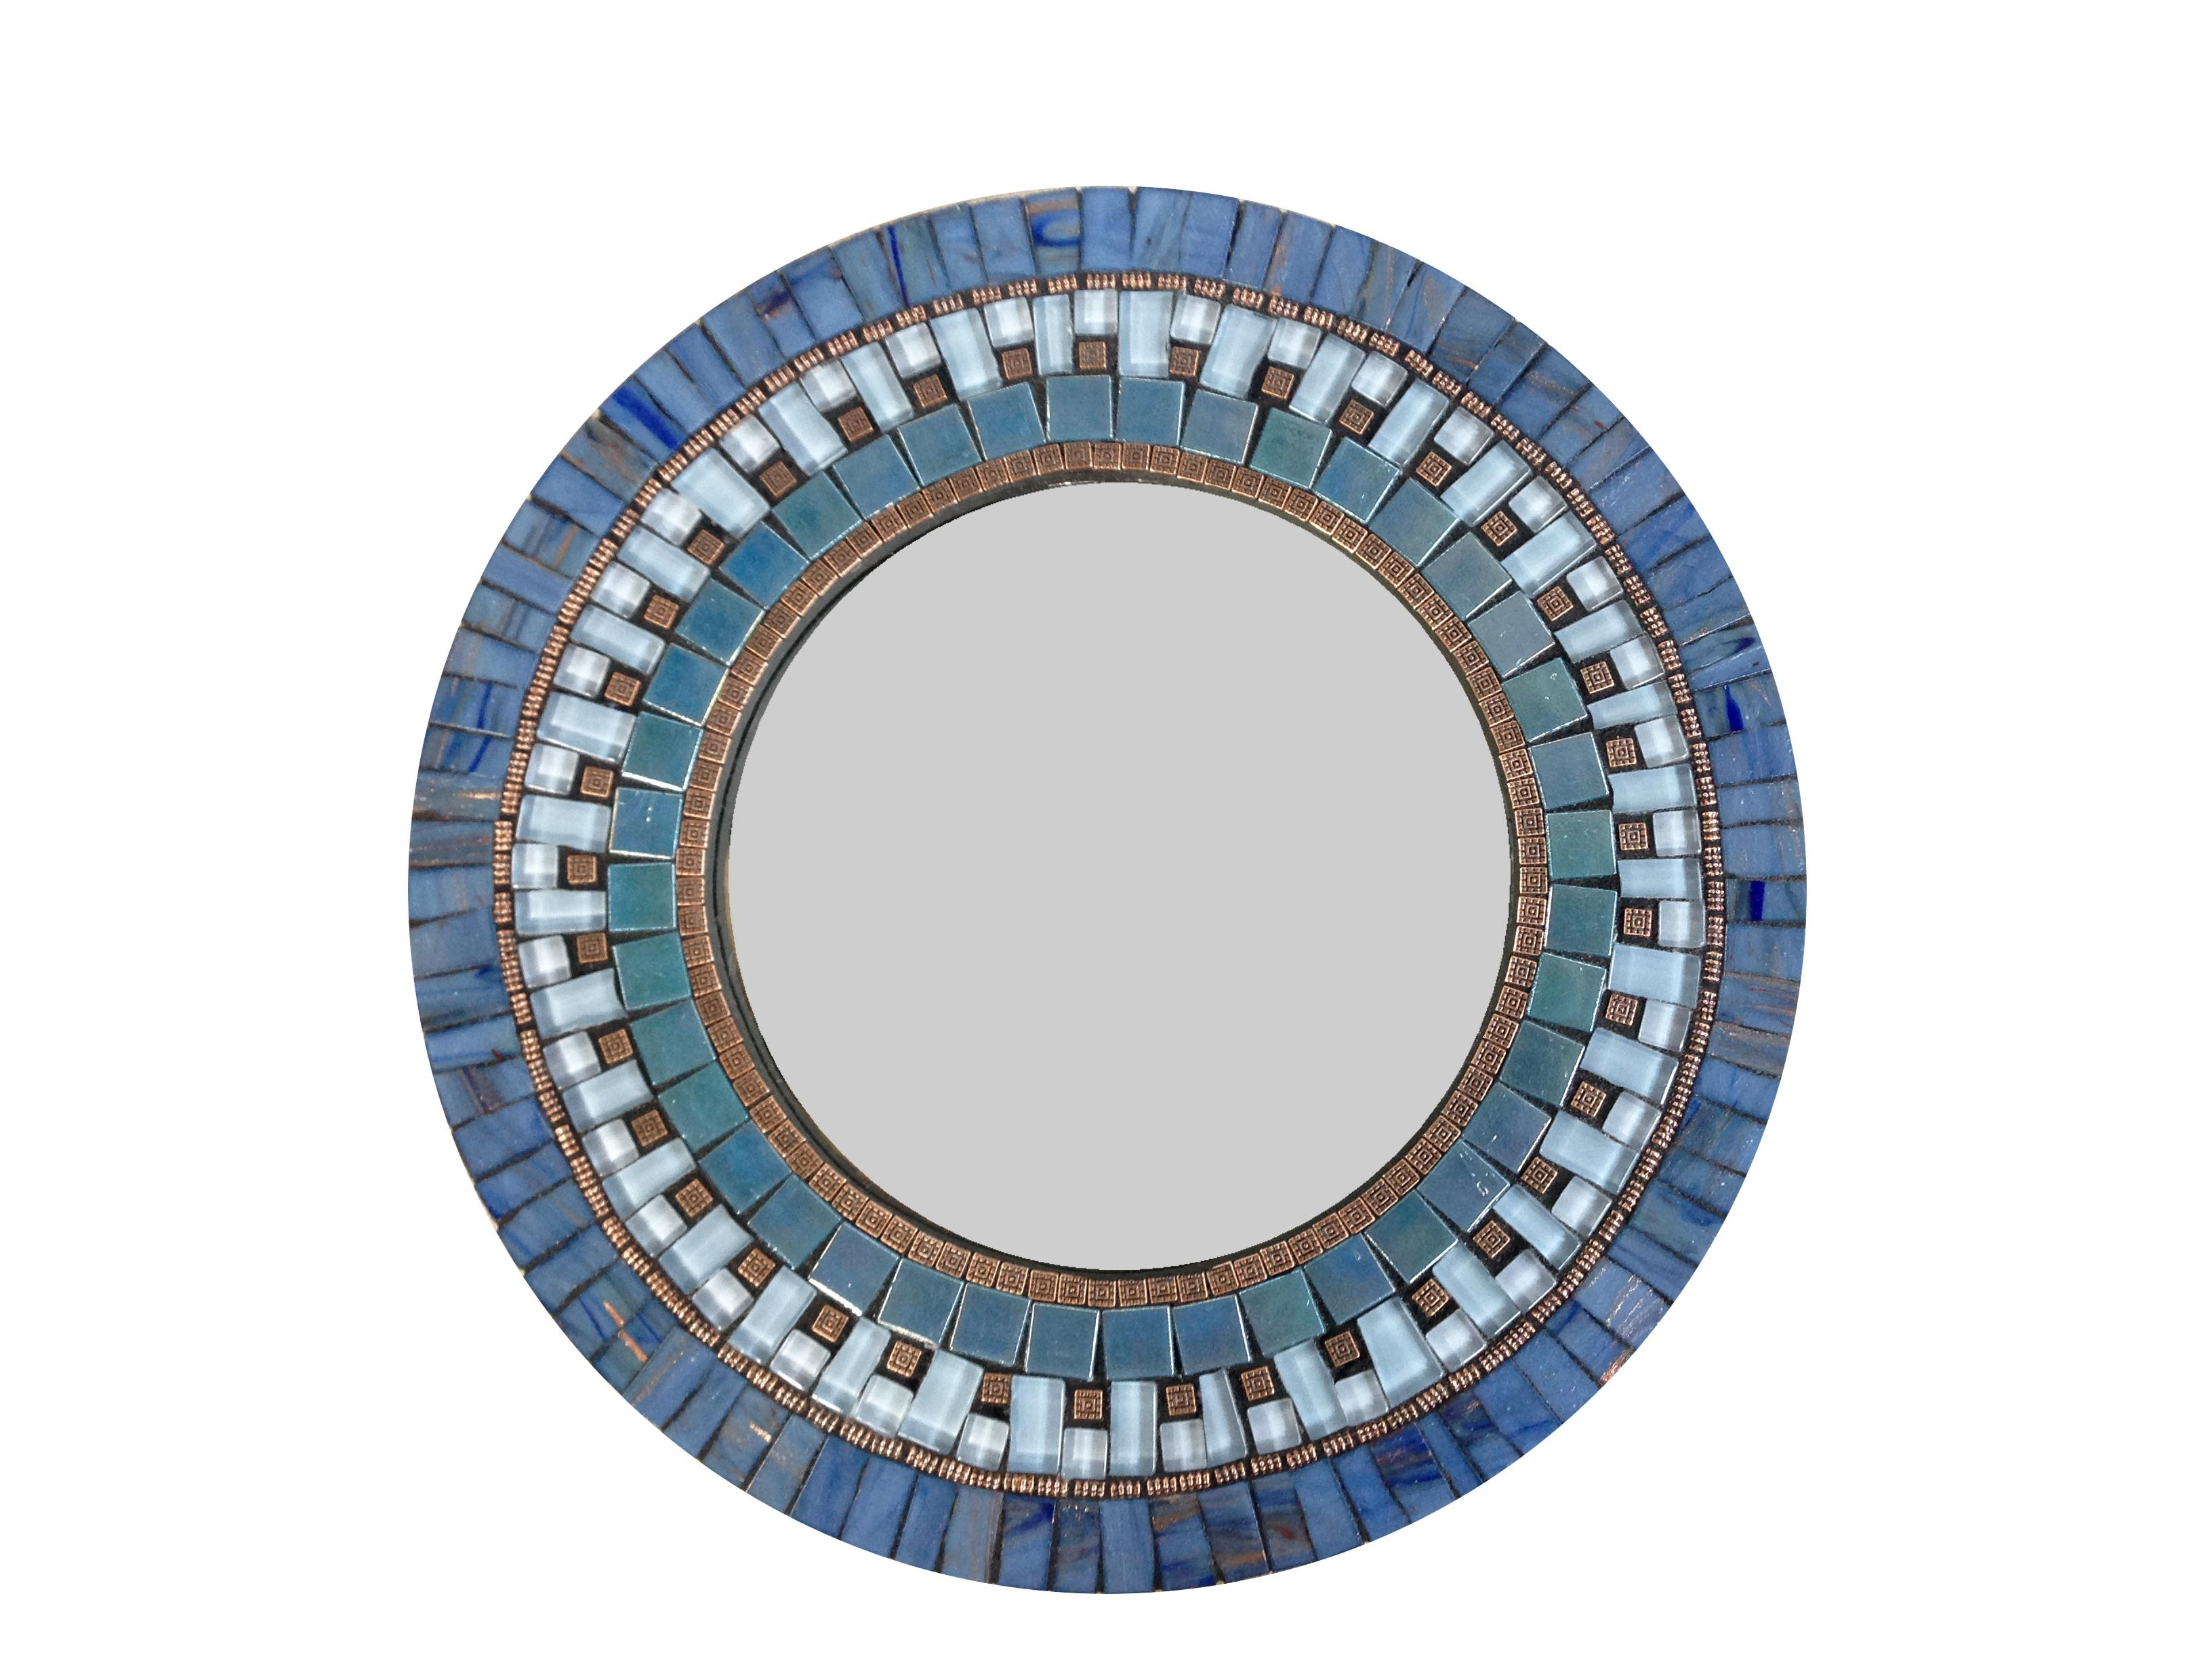 Living Room Redo Mosaic Mirrors Round Mirrors Fireplace Ideas Wall Within Round Mosaic Mirrors (View 8 of 20)